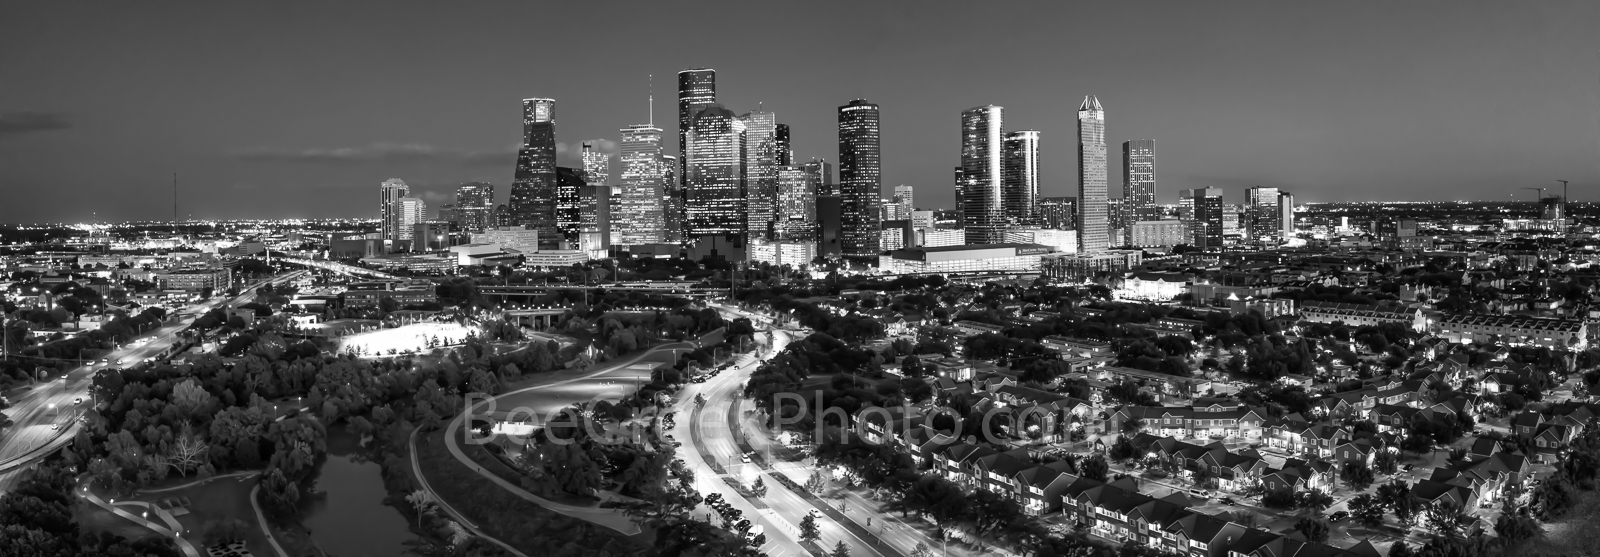 Houston, Skyline, Aerial, pano, panorama, black and white, bw, buffalo bayou, Eleanor Tinsley Park, Memorial Park, Allen Parkway, downtown, hike and bike, Jamail Skate Park, cityscape, southern US,, photo